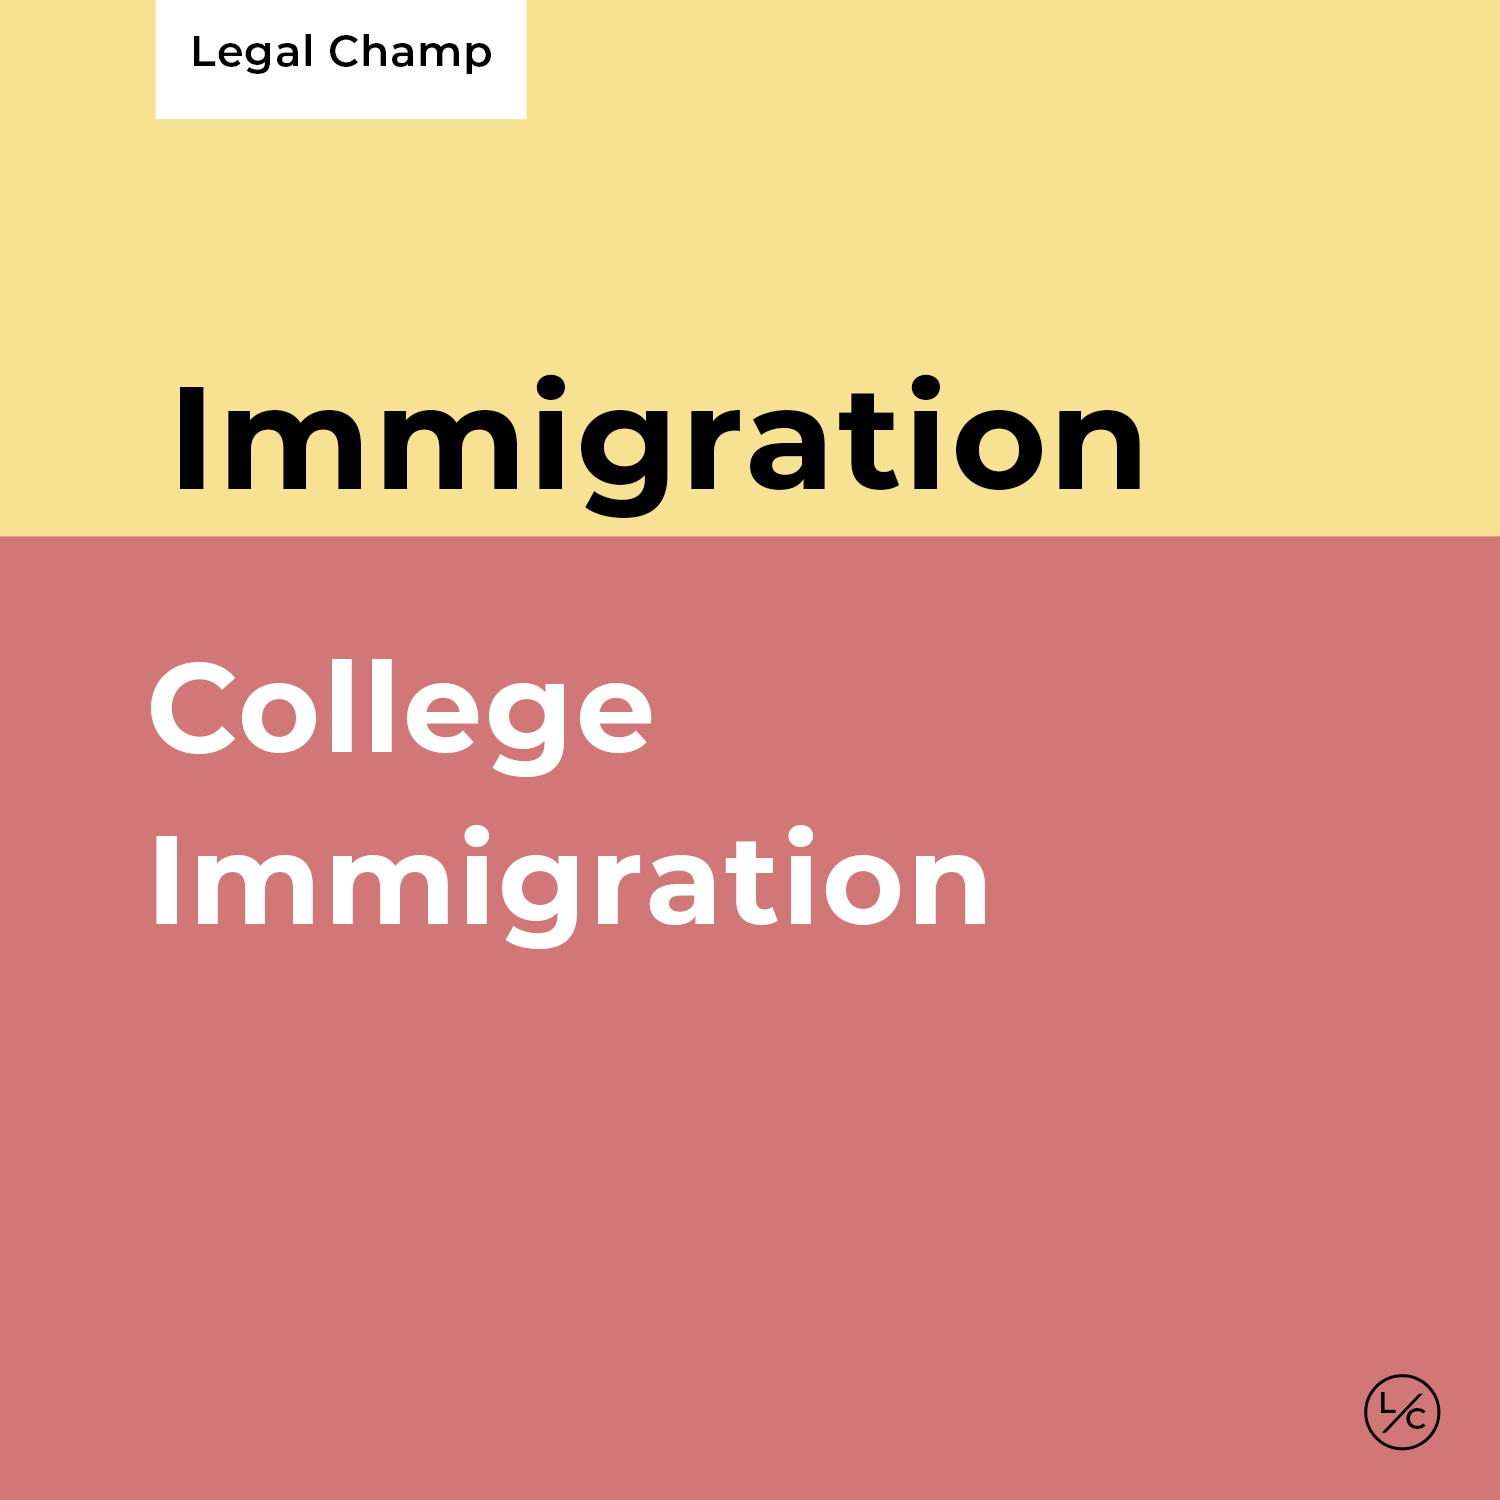 College Immigration